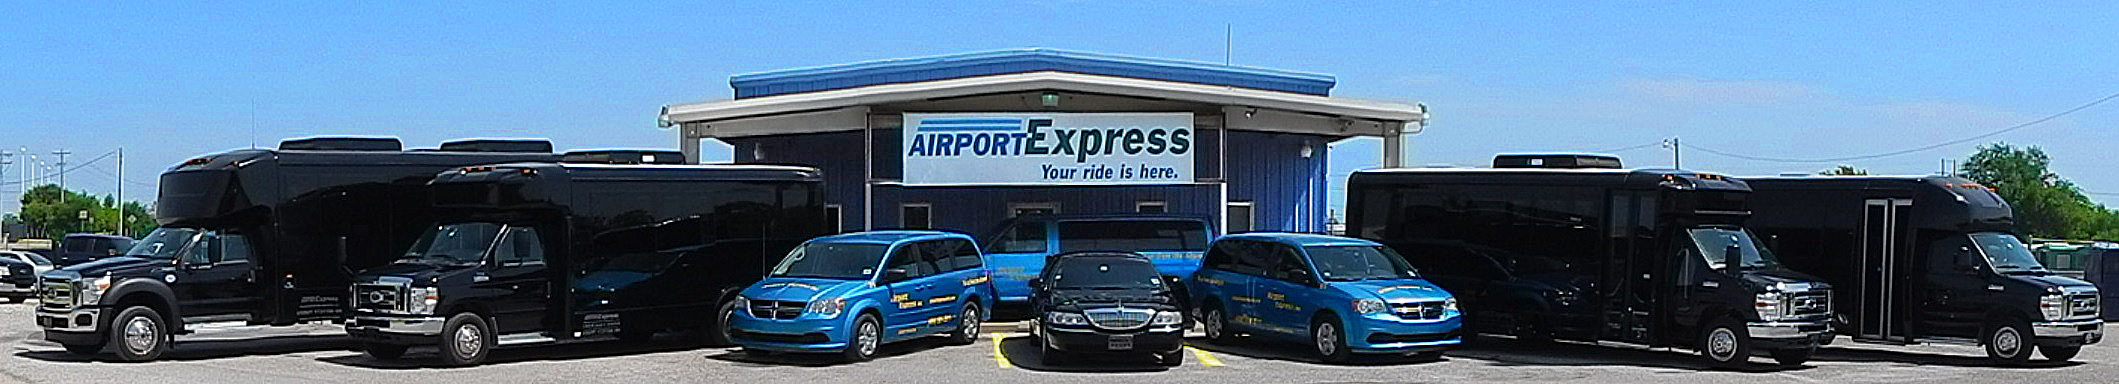 Car Service Okc Airport